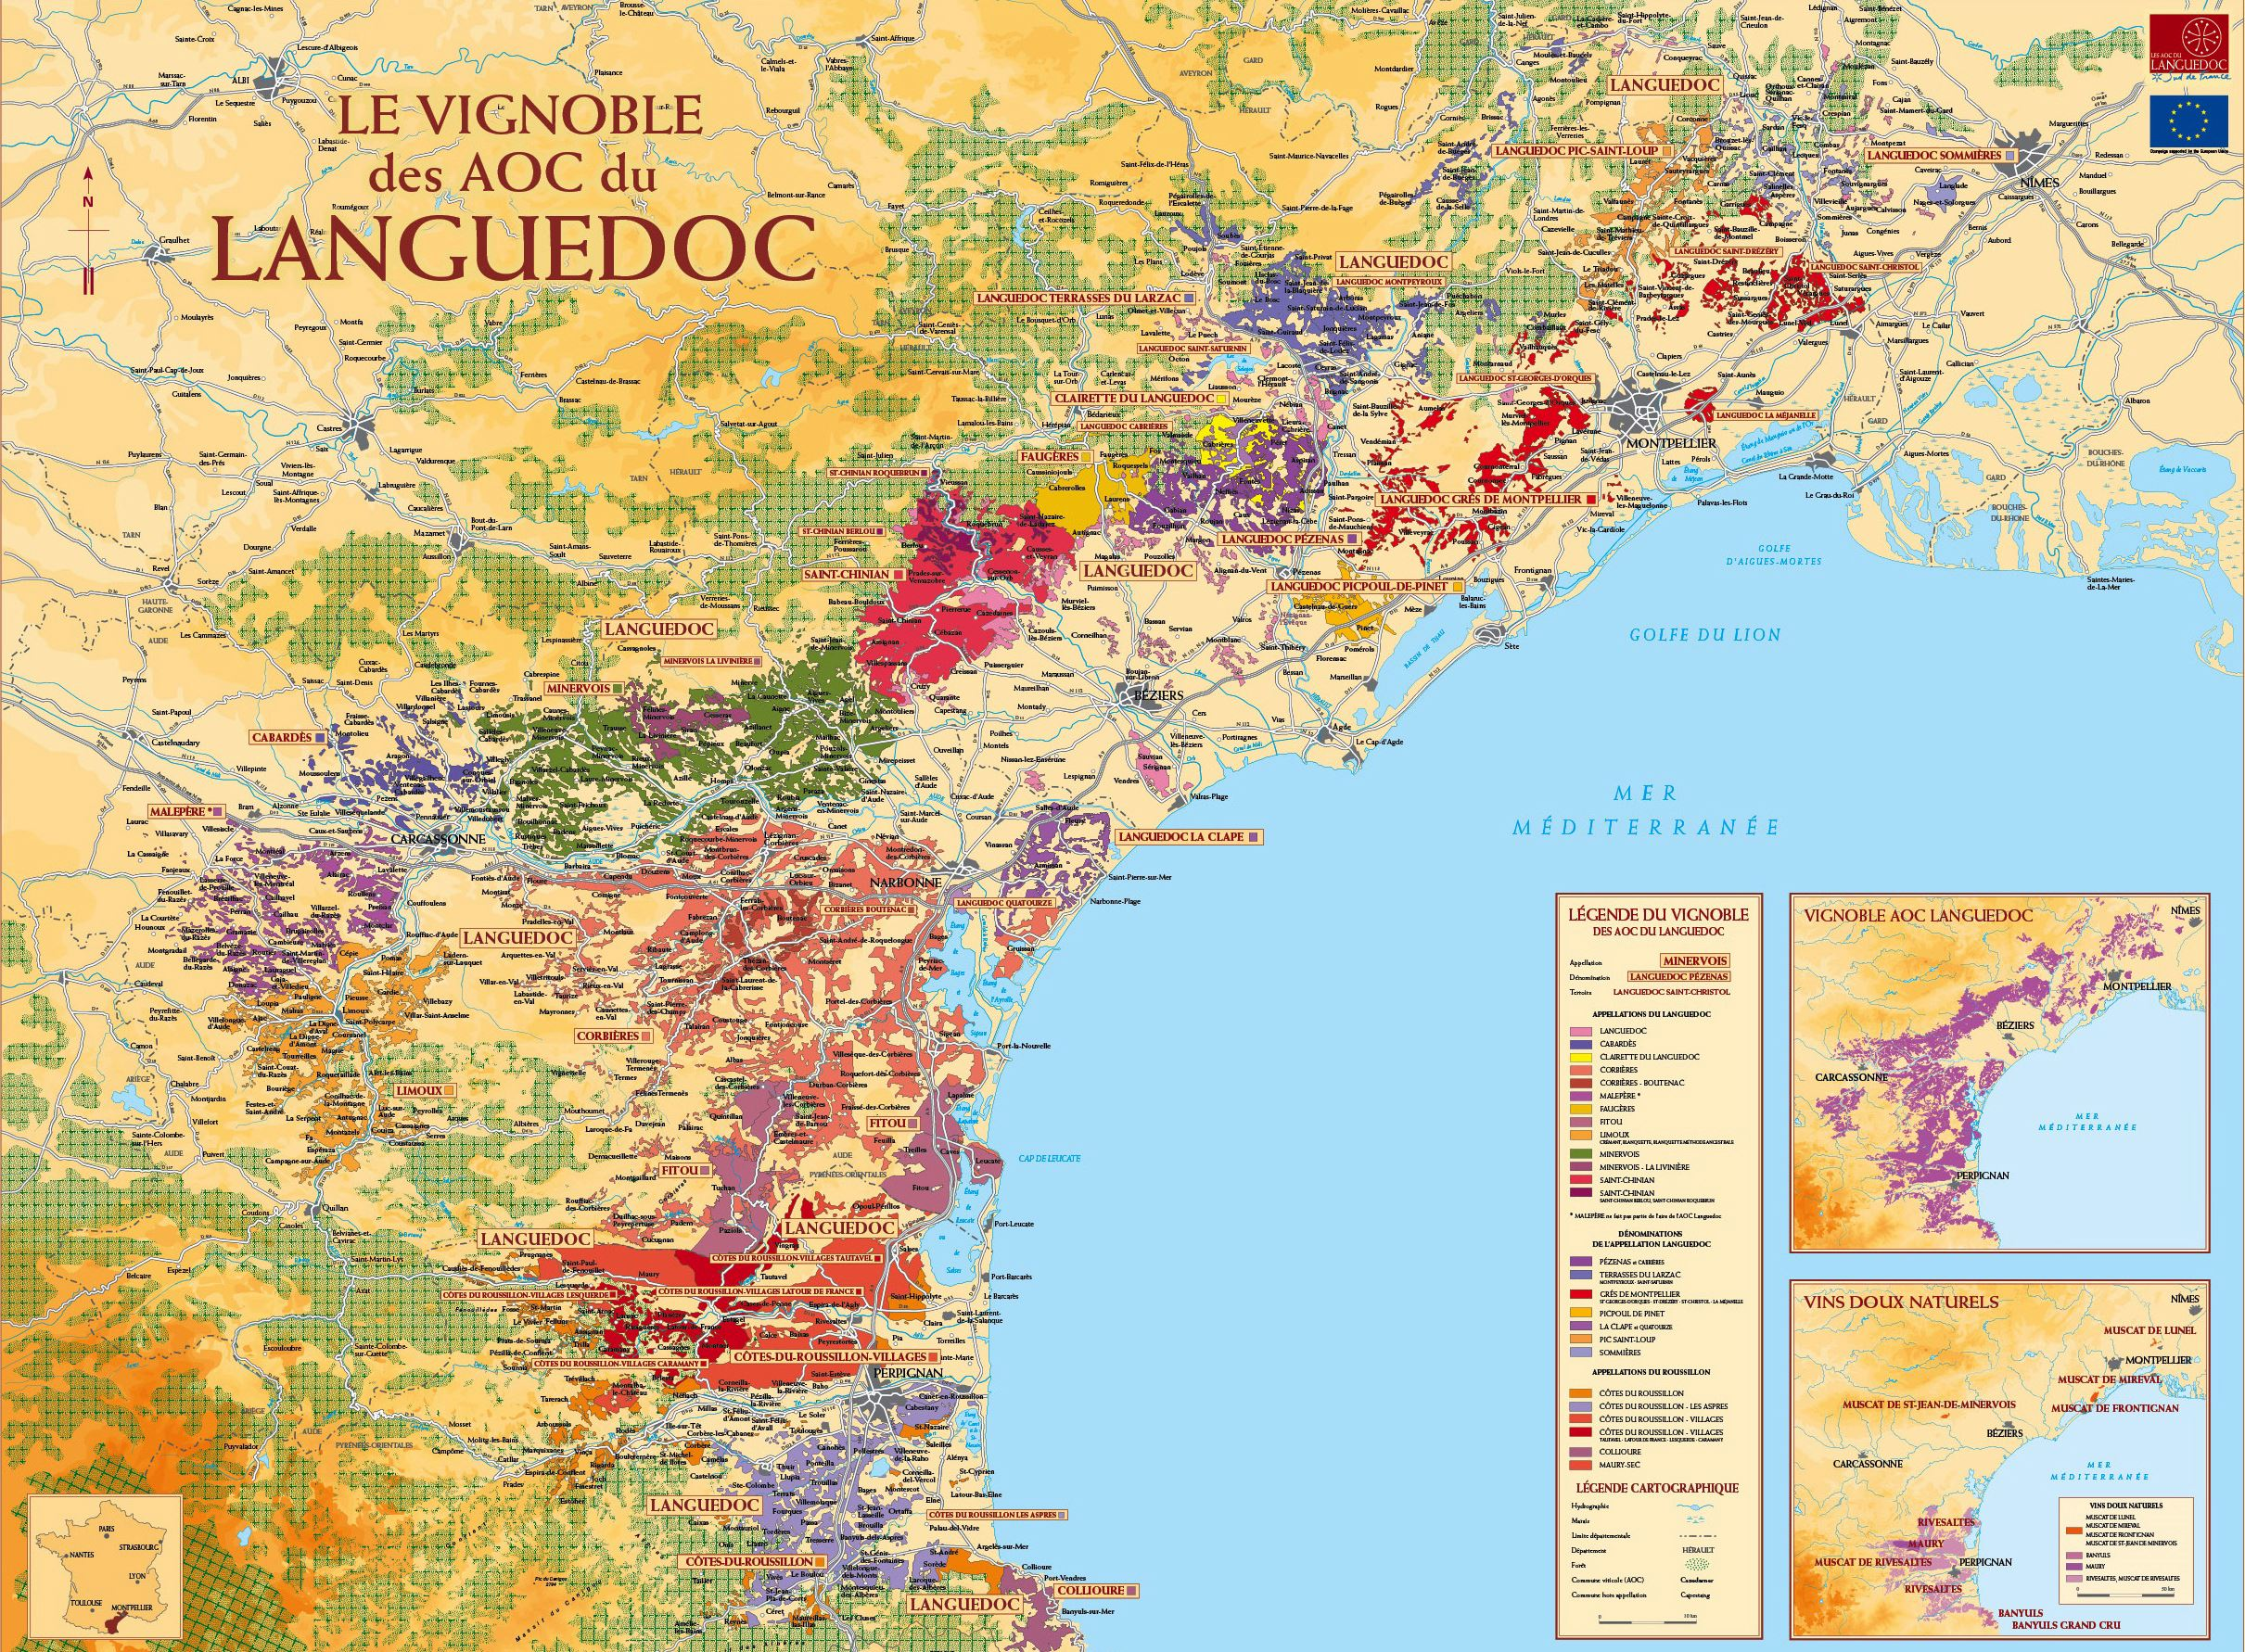 Languedoc Roussillon Région Large Languedoc Roussillon Maps For Free Download And Print High